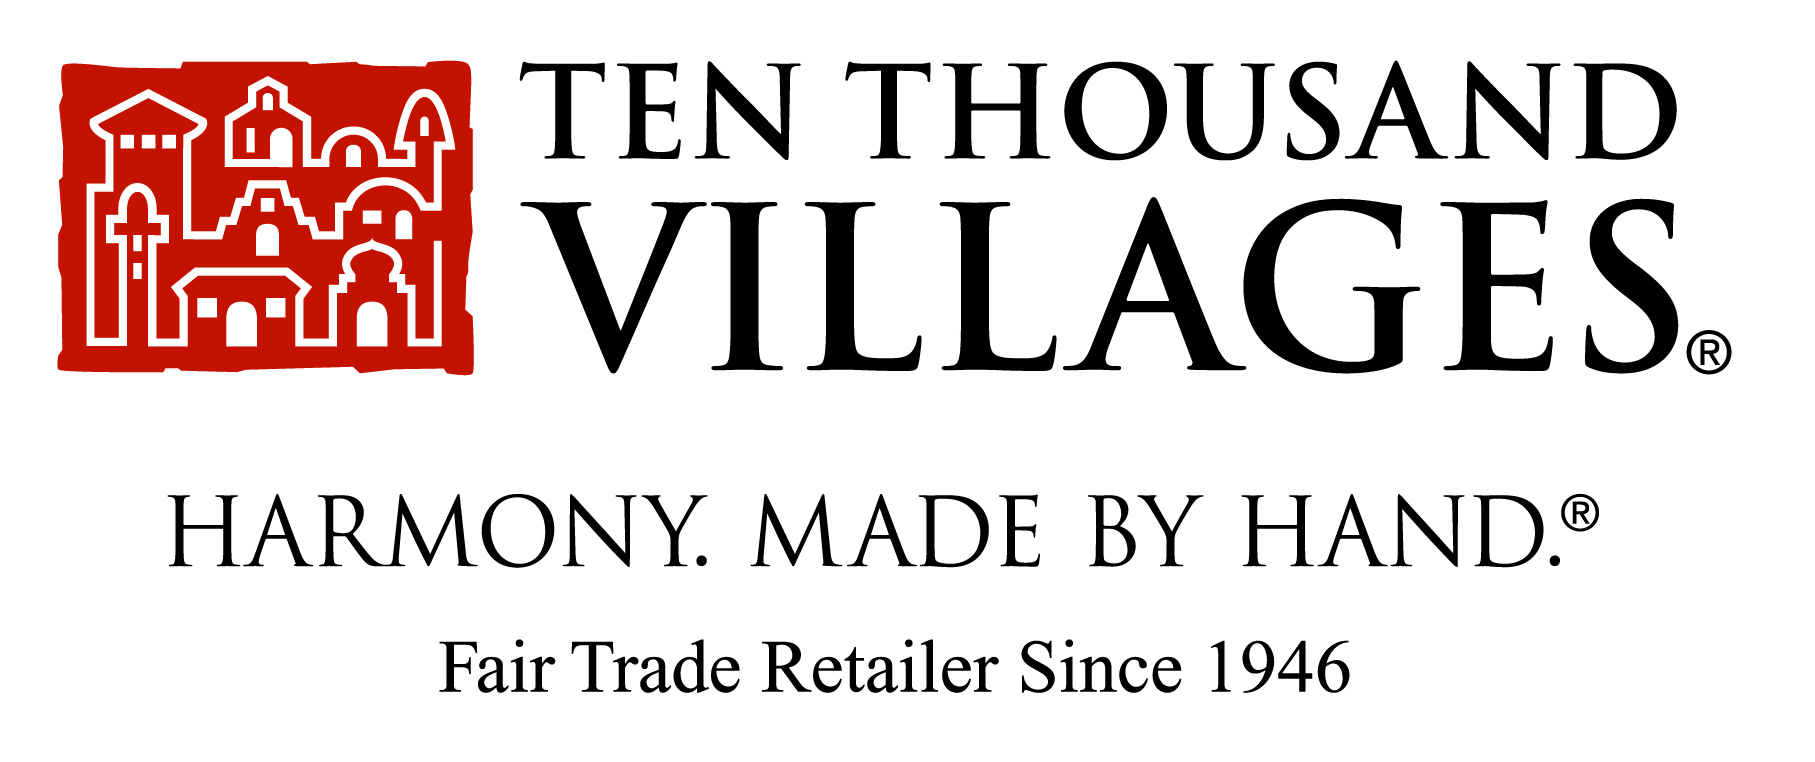 Ten Thousand Villages - Connected to artisans everywhereTen Thousand Villages finds and provides handmade gifts from artisans all around the world. All of their products are unique, and their toys have a charming simplicity that sets them apart. Founded in 1946, the company has grown from the trunk of founder Edna Ruth Byler's car to one of the world's largest fair trade organizations, and a founding member of the World Fair Trade Organization (WFTO). Today, it strives to improve the livelihood of tens of thousands of disadvantaged artisans in 38 countries.